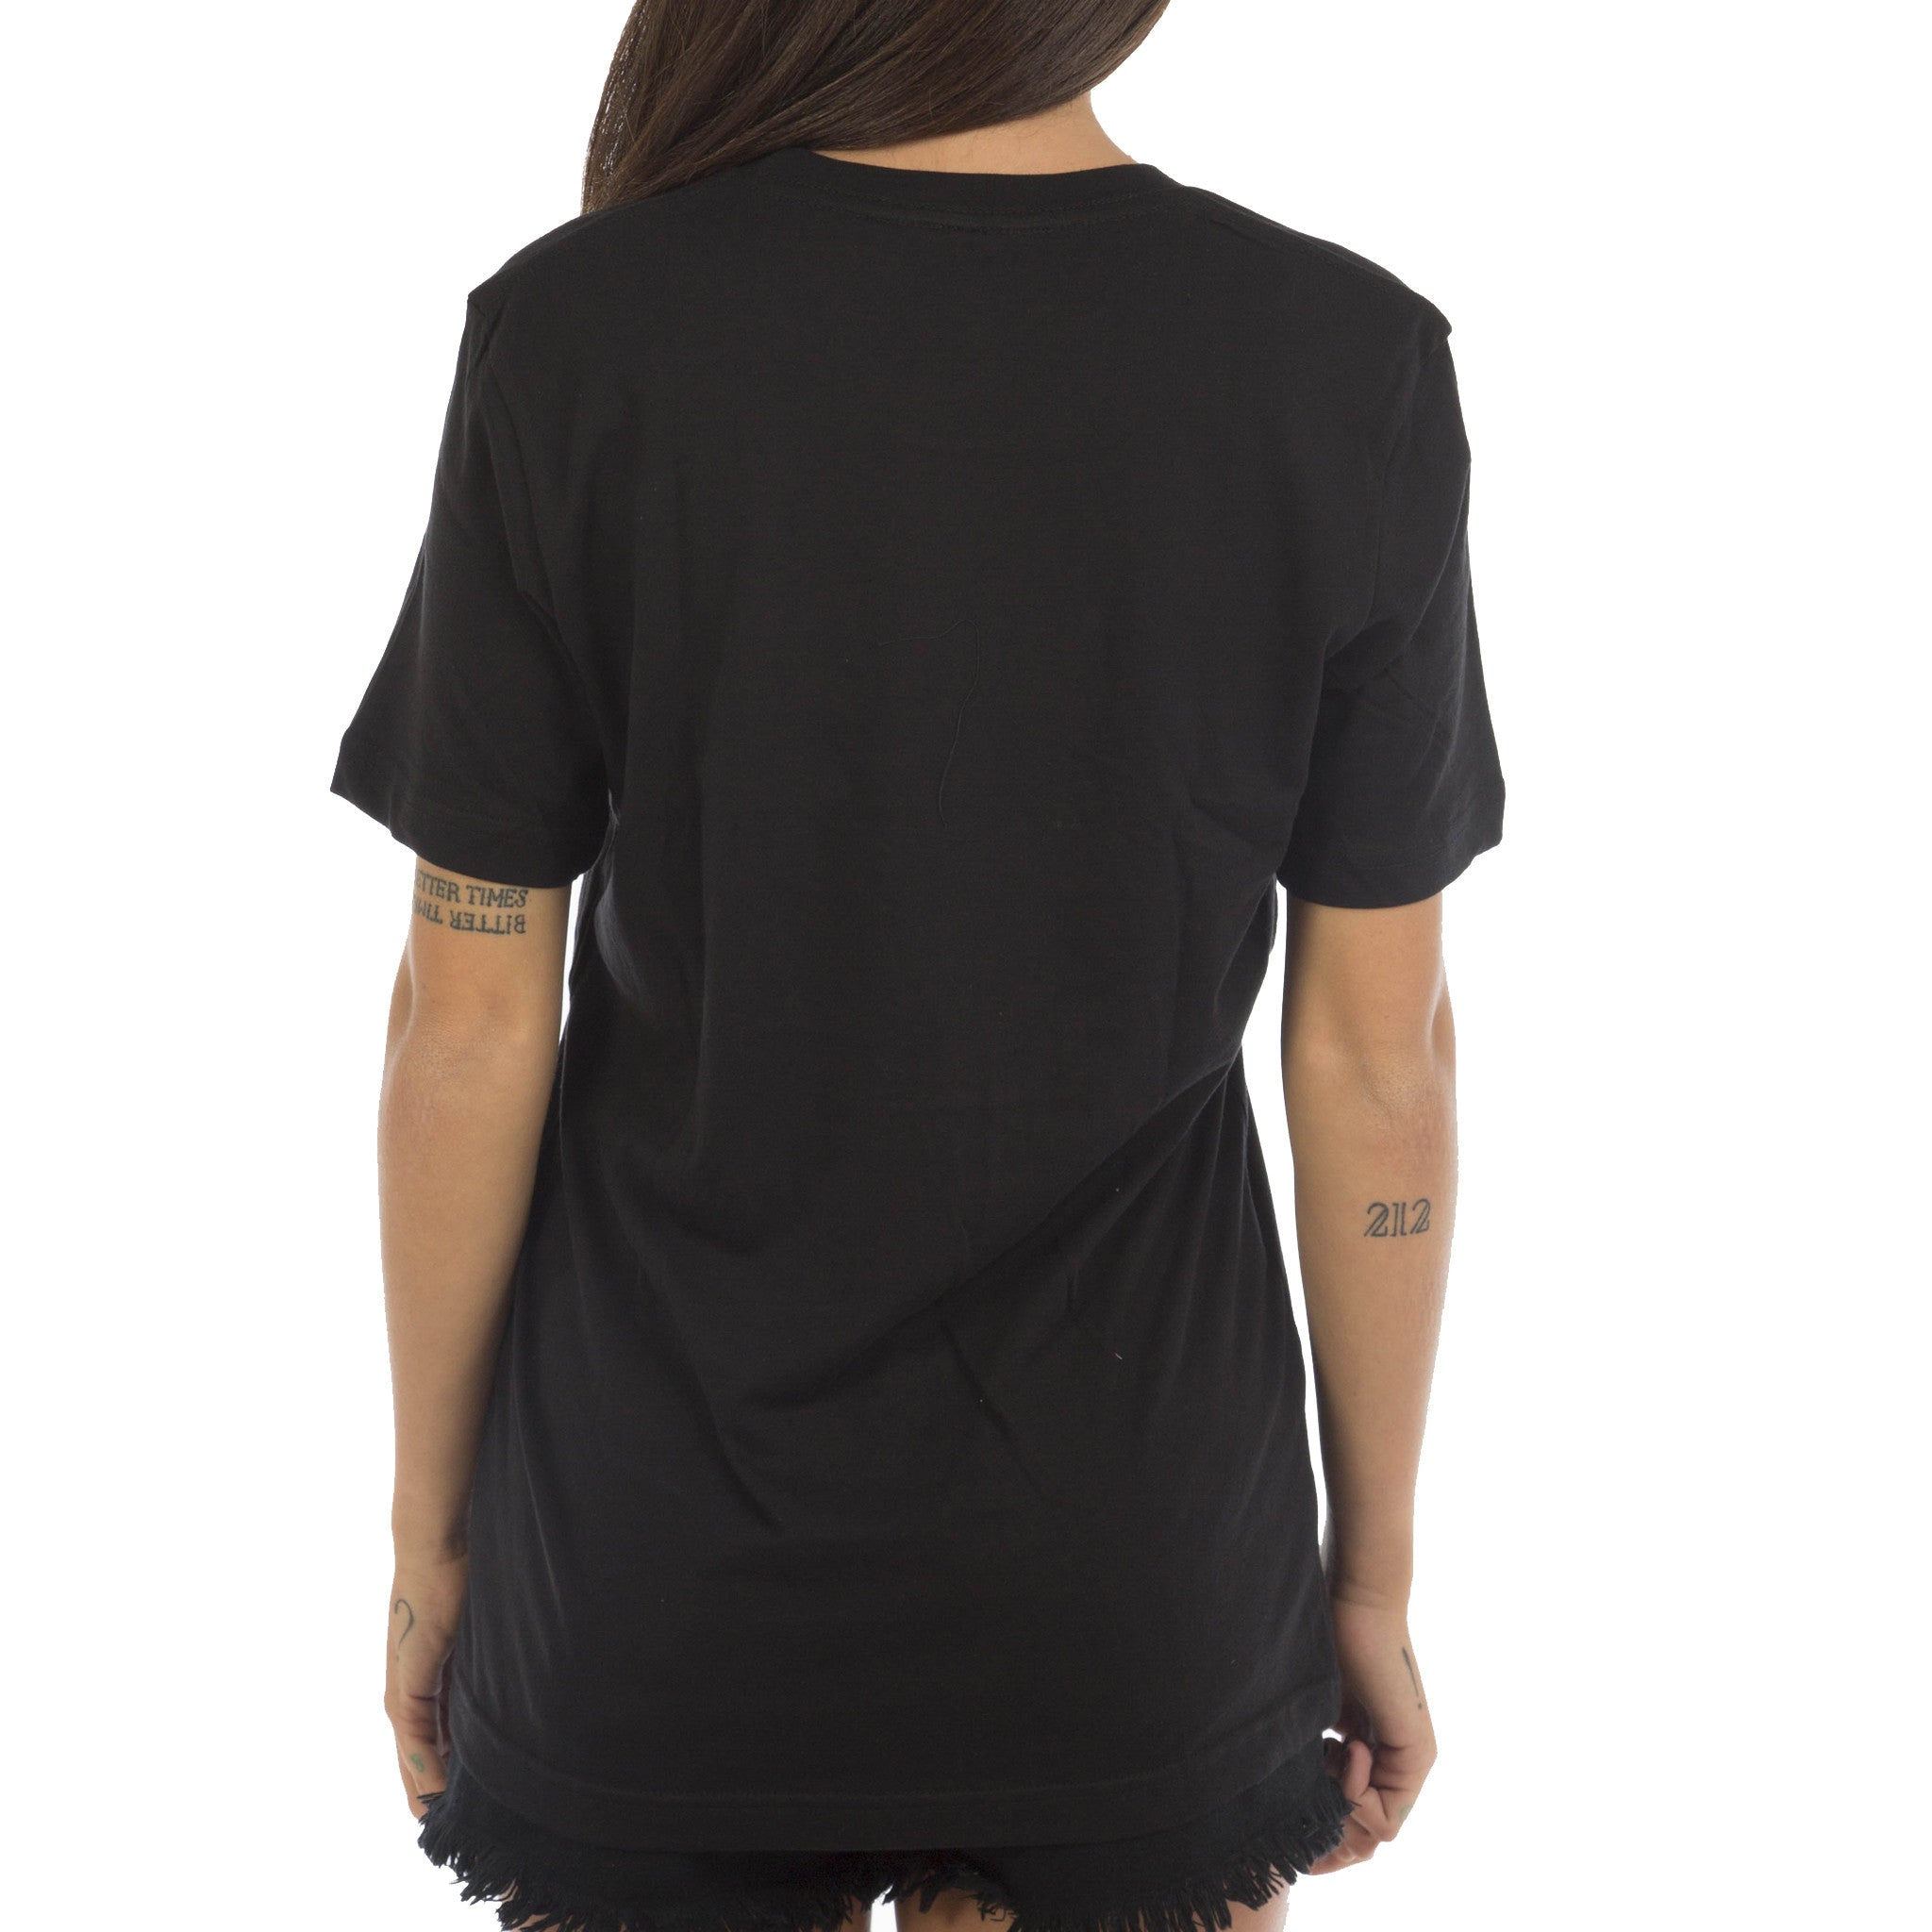 Supereroe - T-Shirt Donna Promo - T-Shirt by Fol The Brand